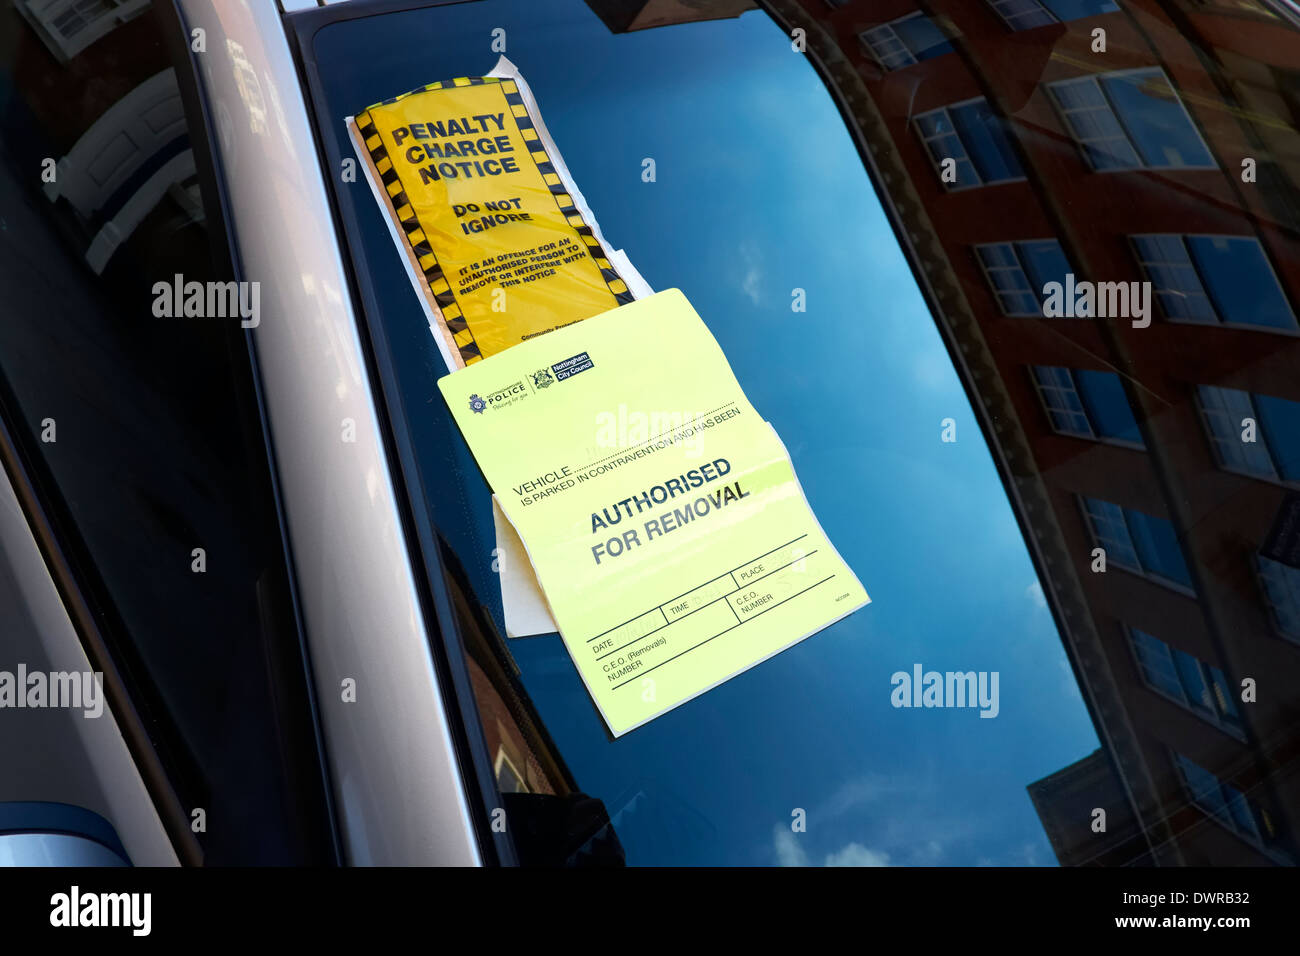 Penalty charge notice and authorised for removal sticker Nottingham England UK - Stock Image